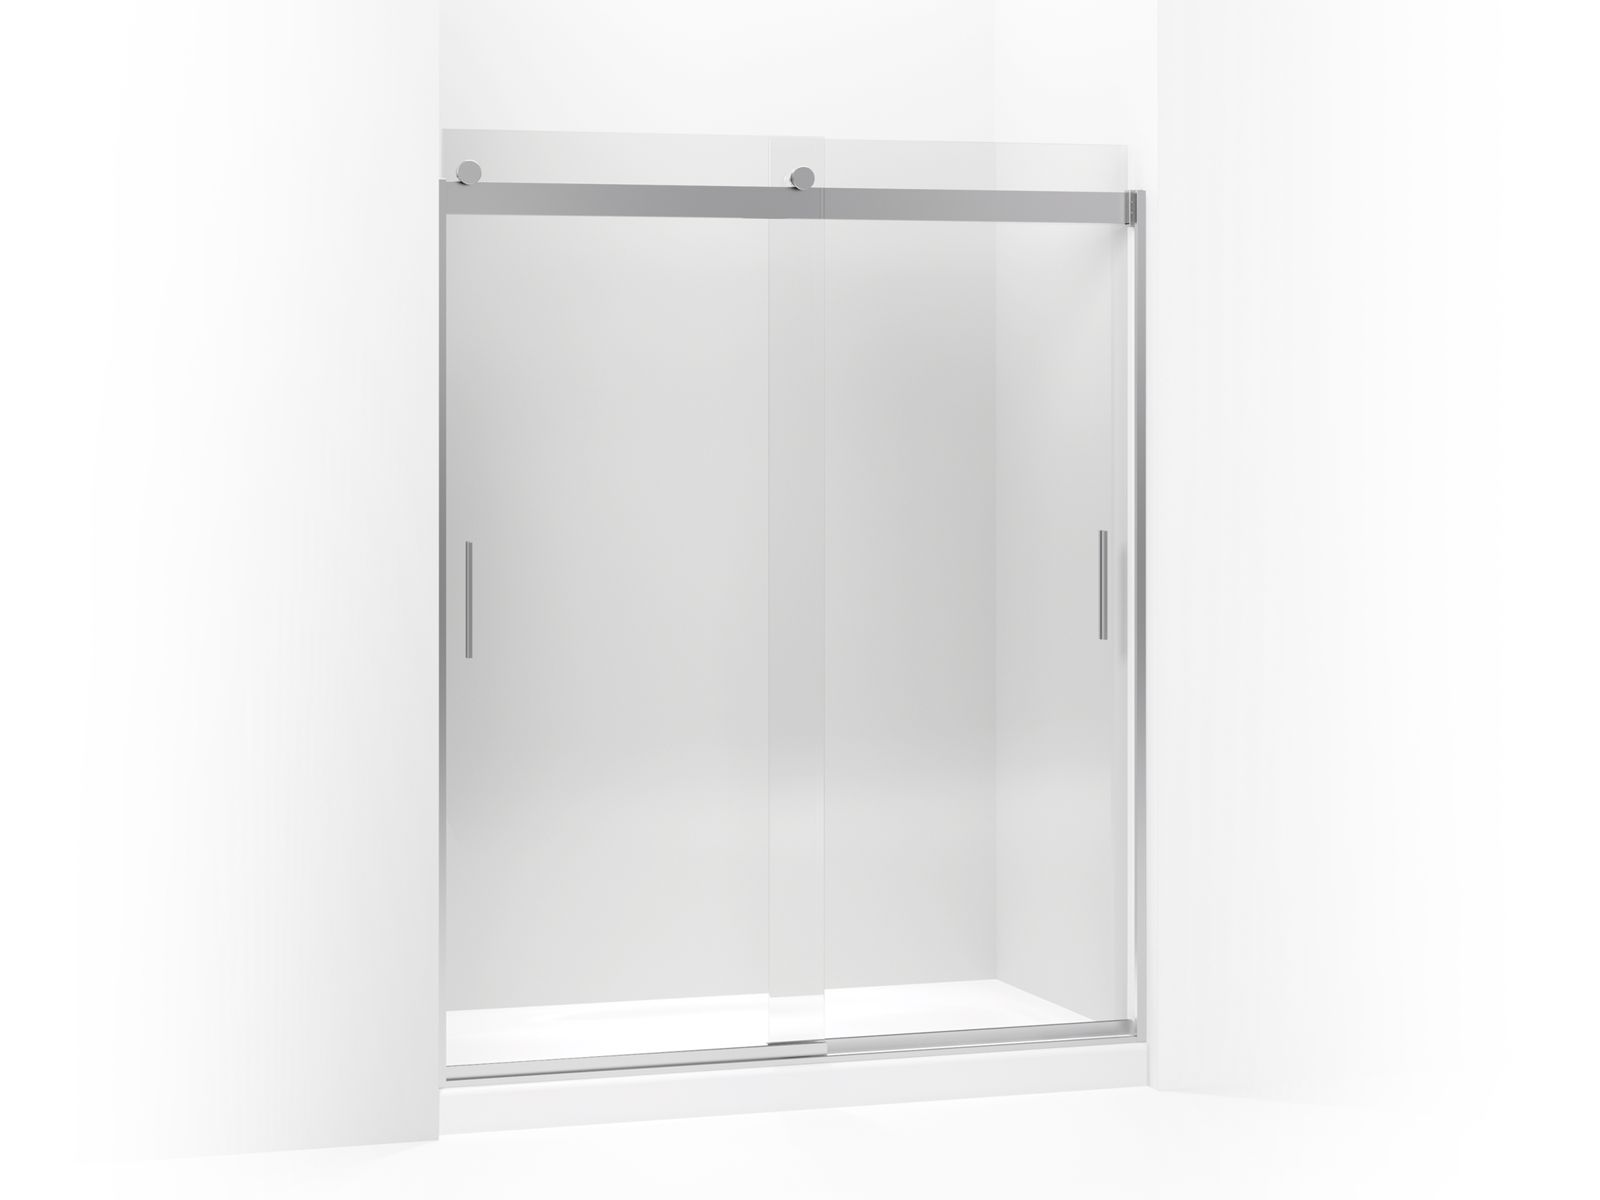 sc 1 st  Kohler & Levity Frameless Sliding Shower Door | K-706009-L | KOHLER